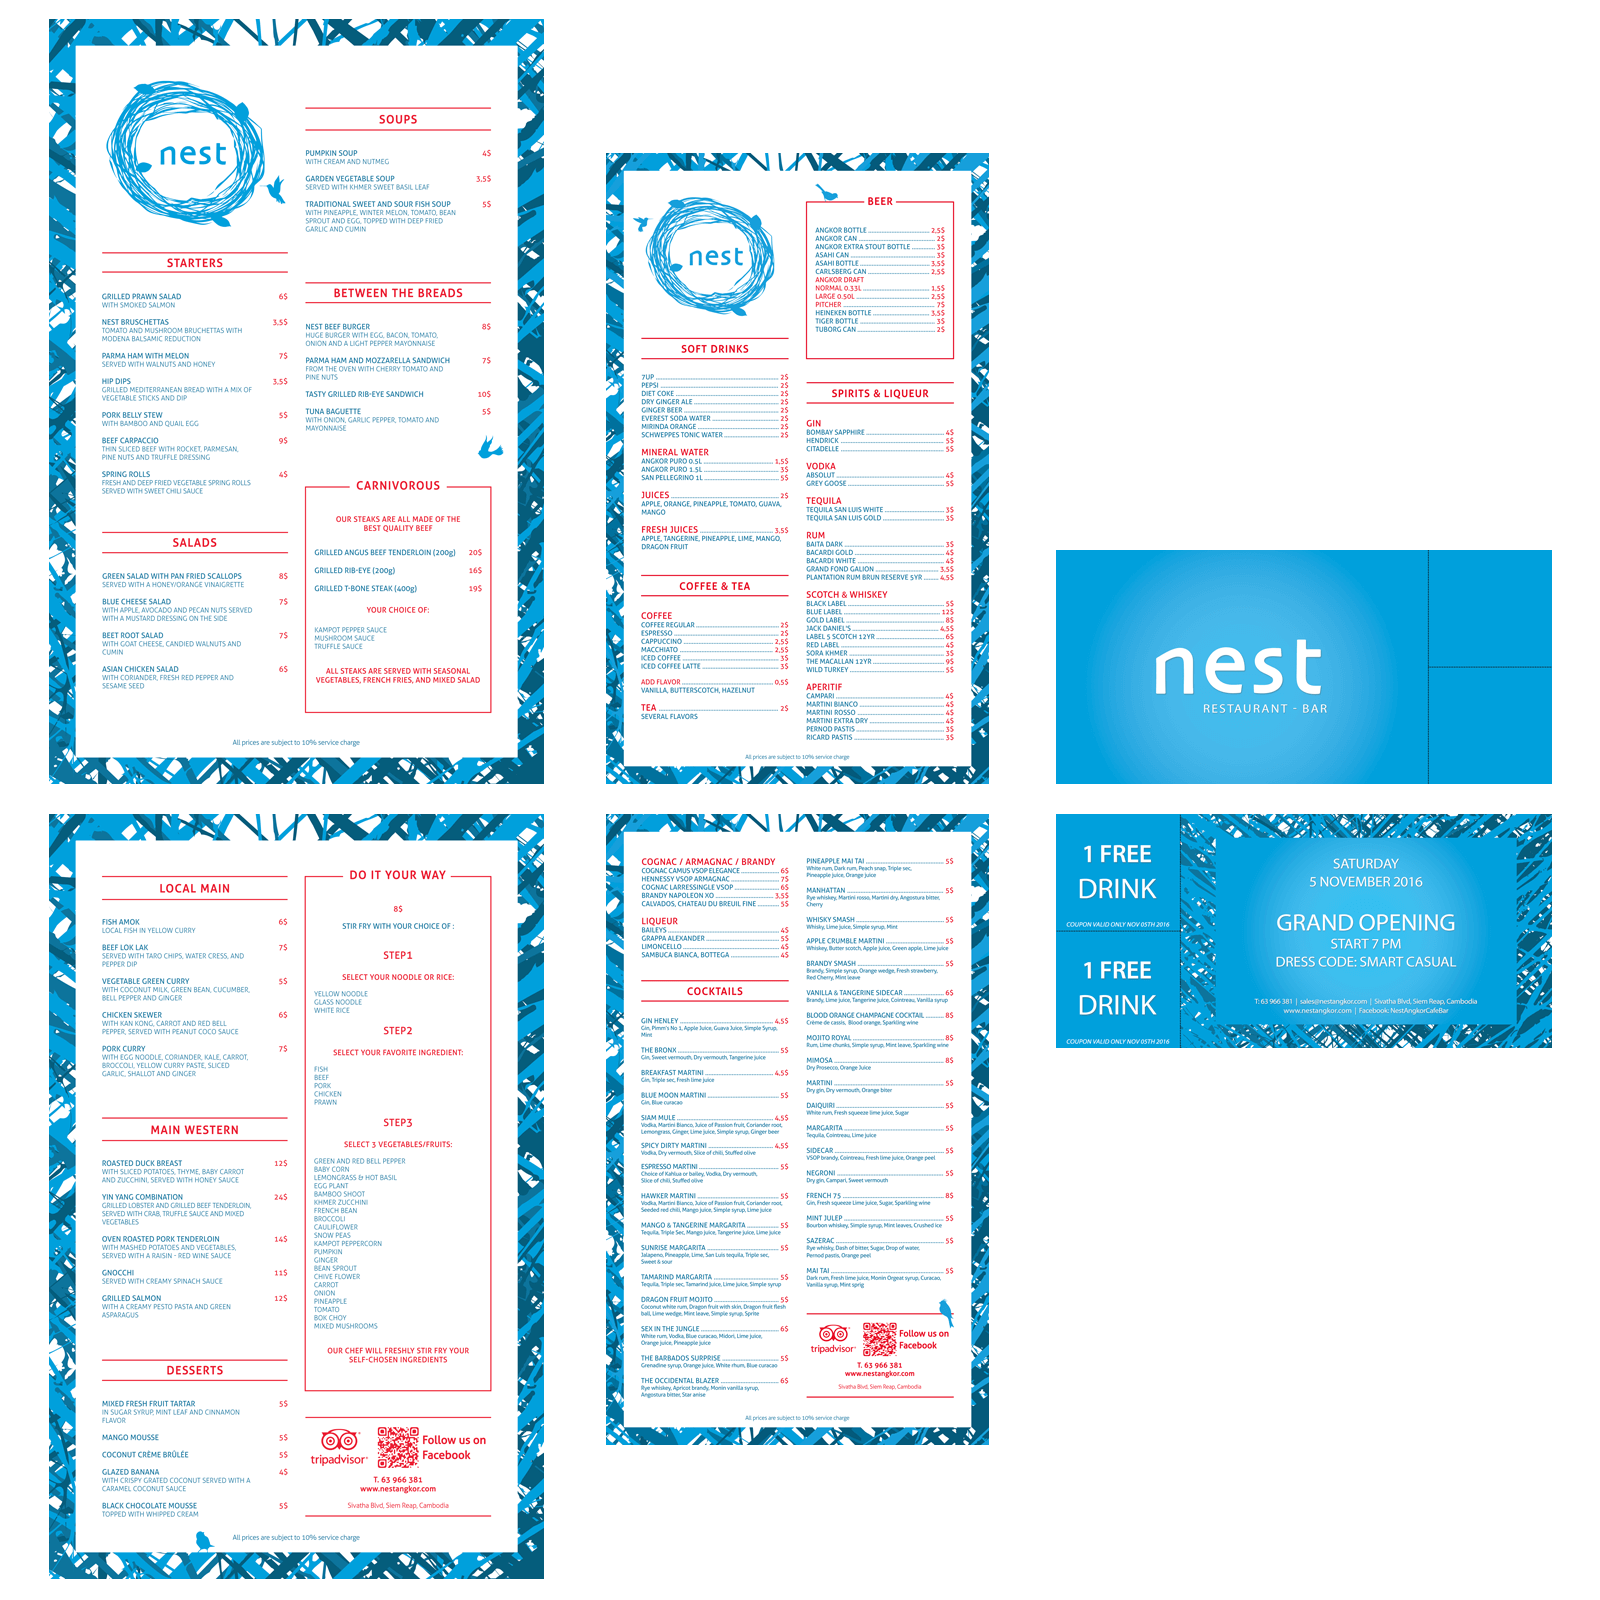 Food and Drink Menus, Invitation Card - Nest Restaurant - Siem Reap